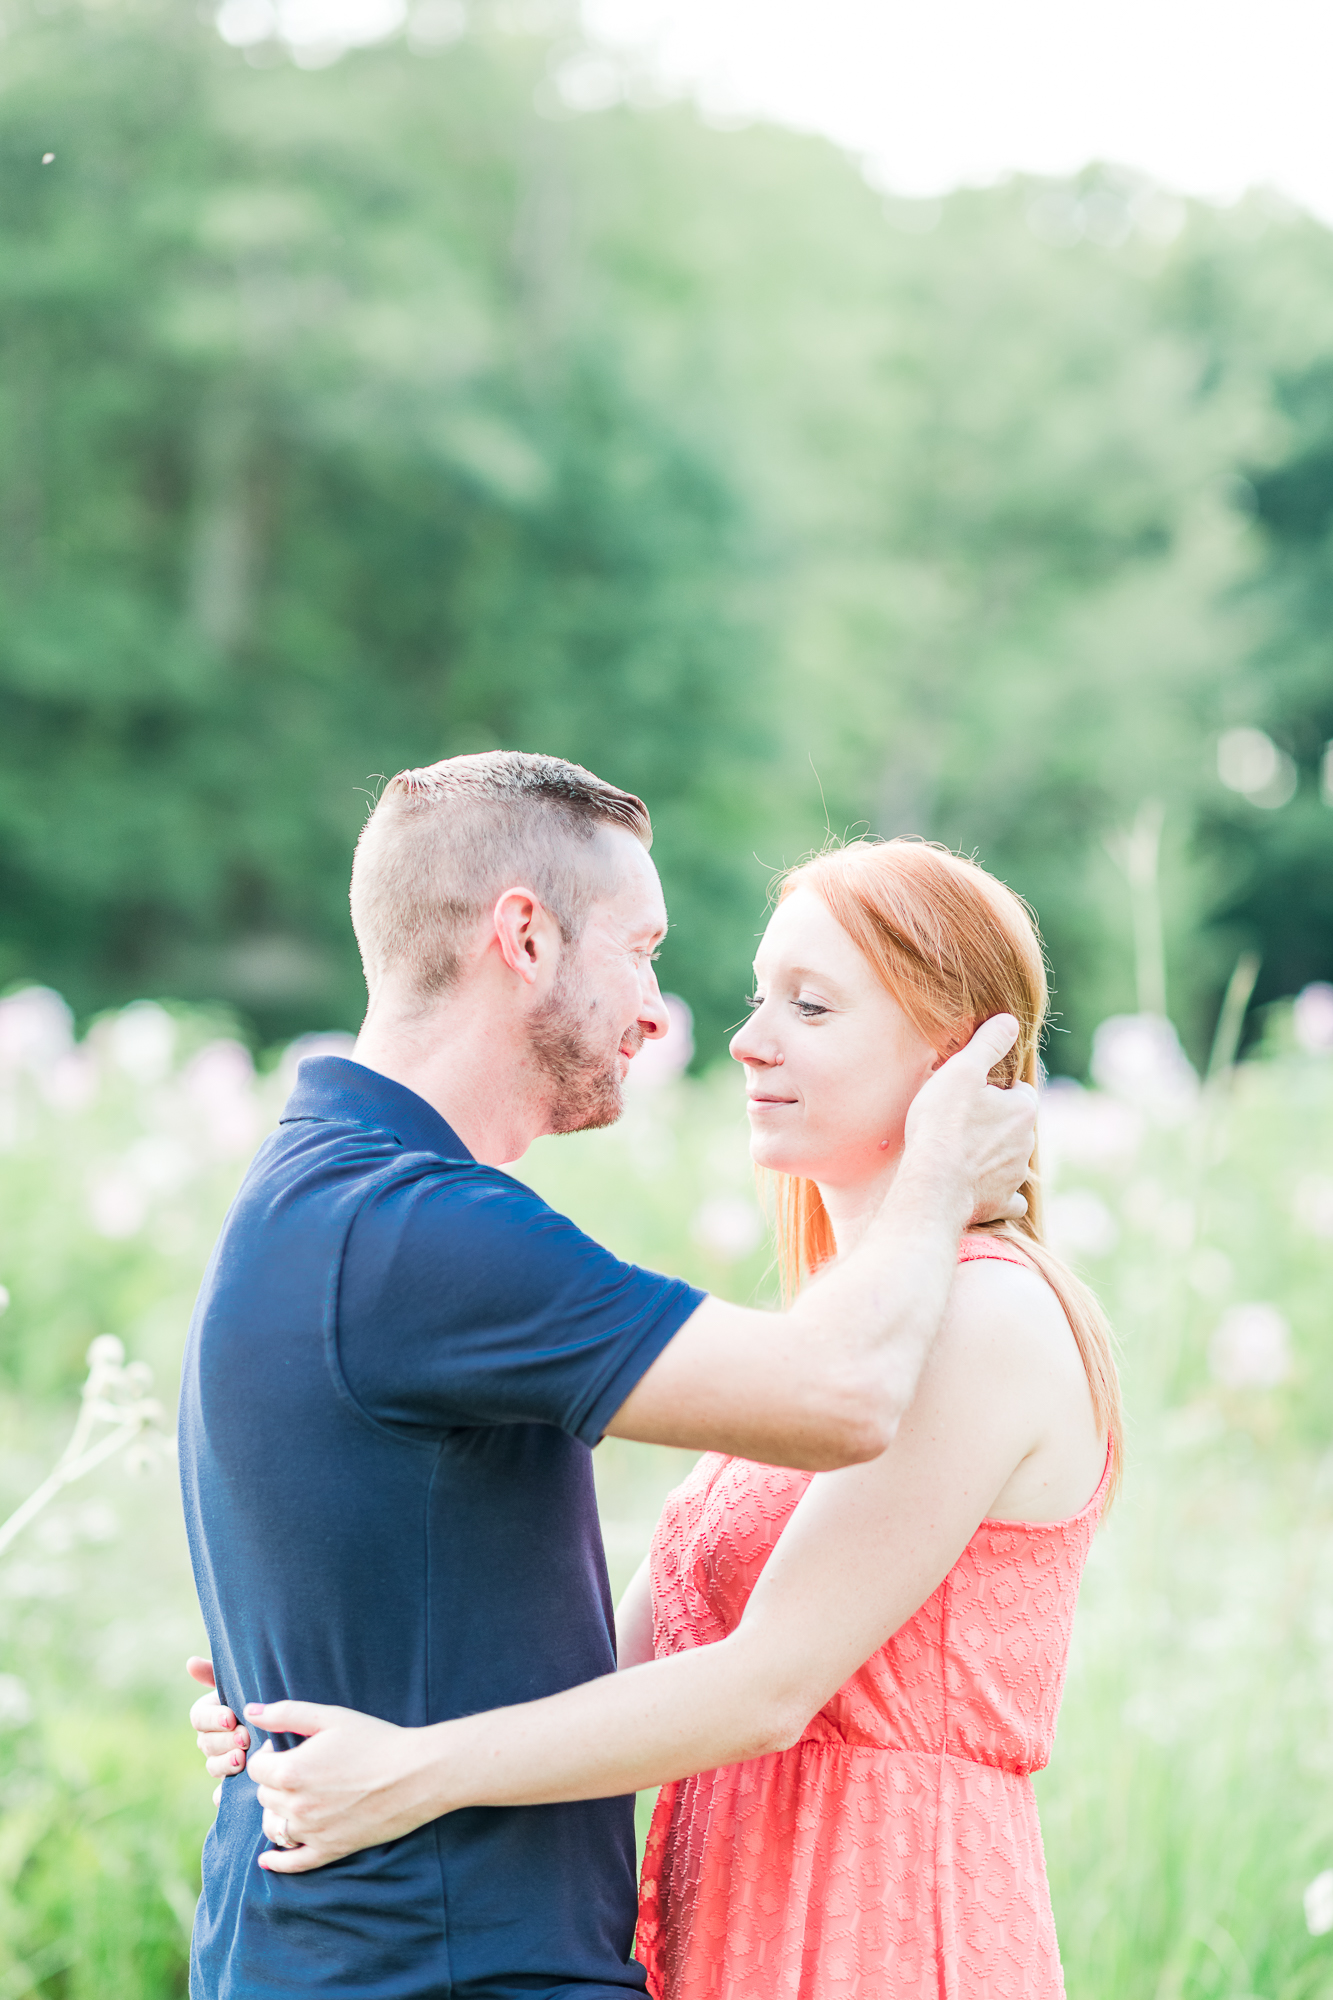 AB Favorites_Katy+Brian_Engagement Session_Brecksville Reservation_Brecksville_Ohio-22.jpg